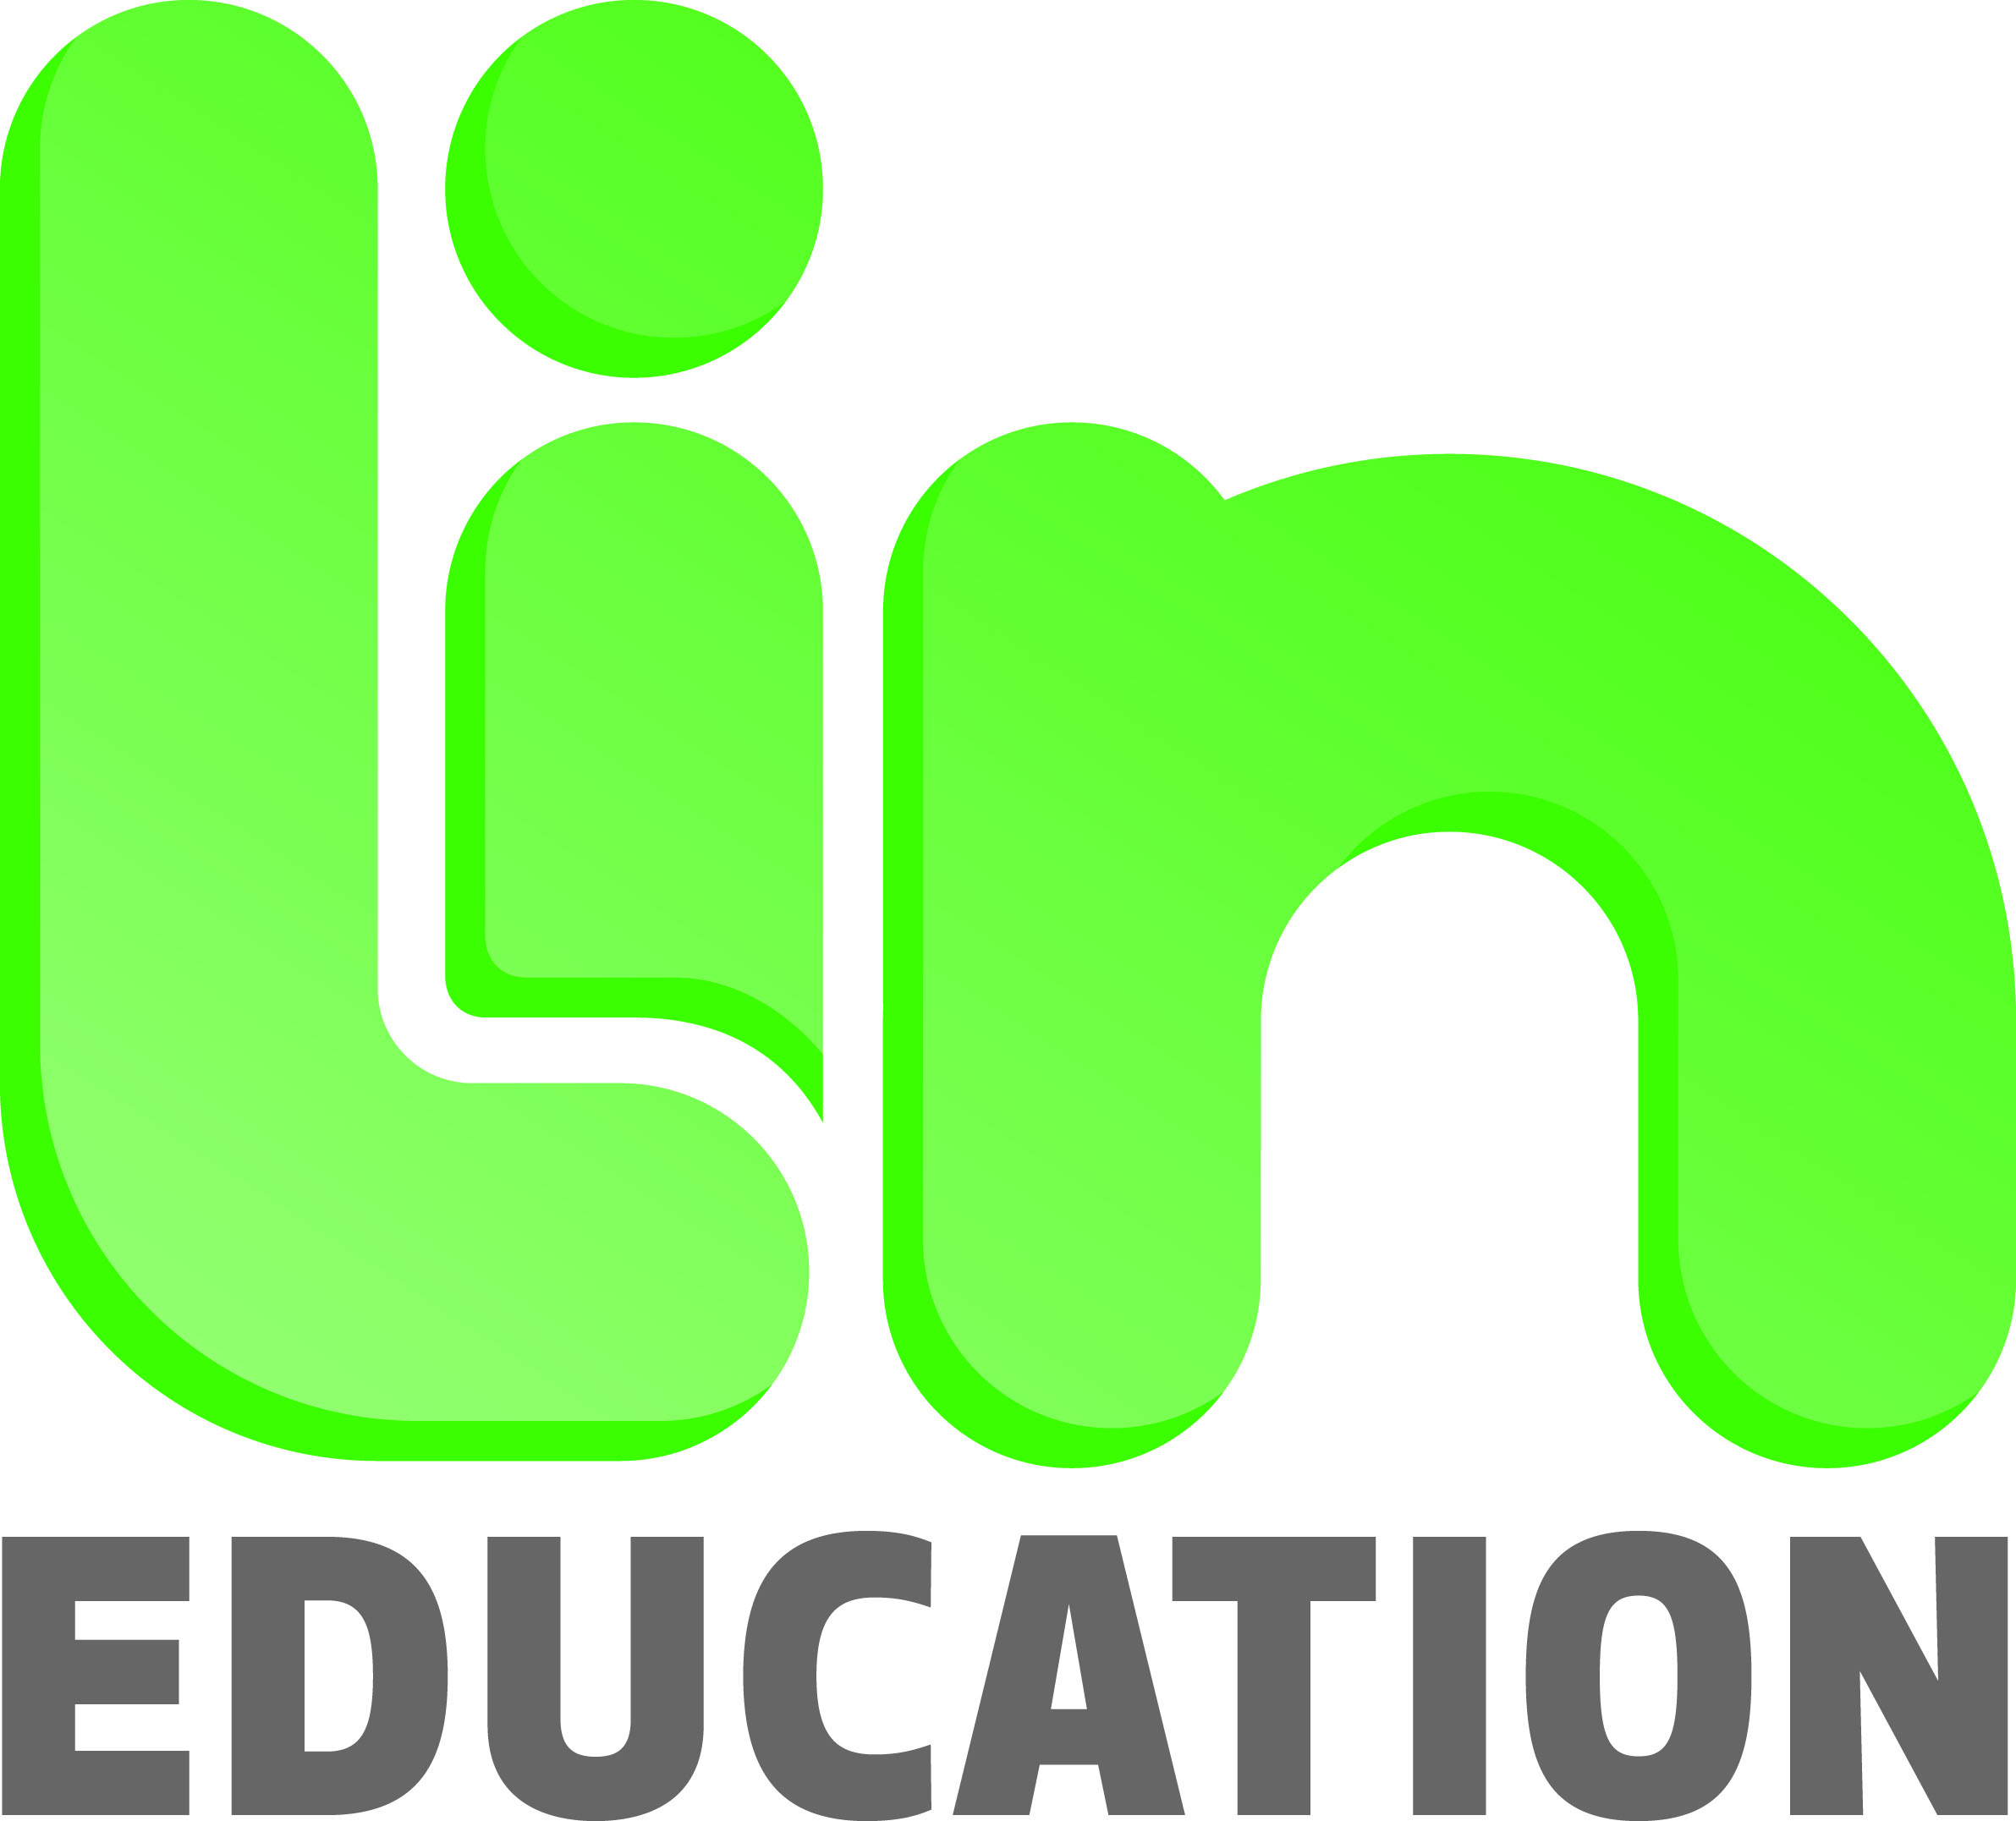 Lineducation